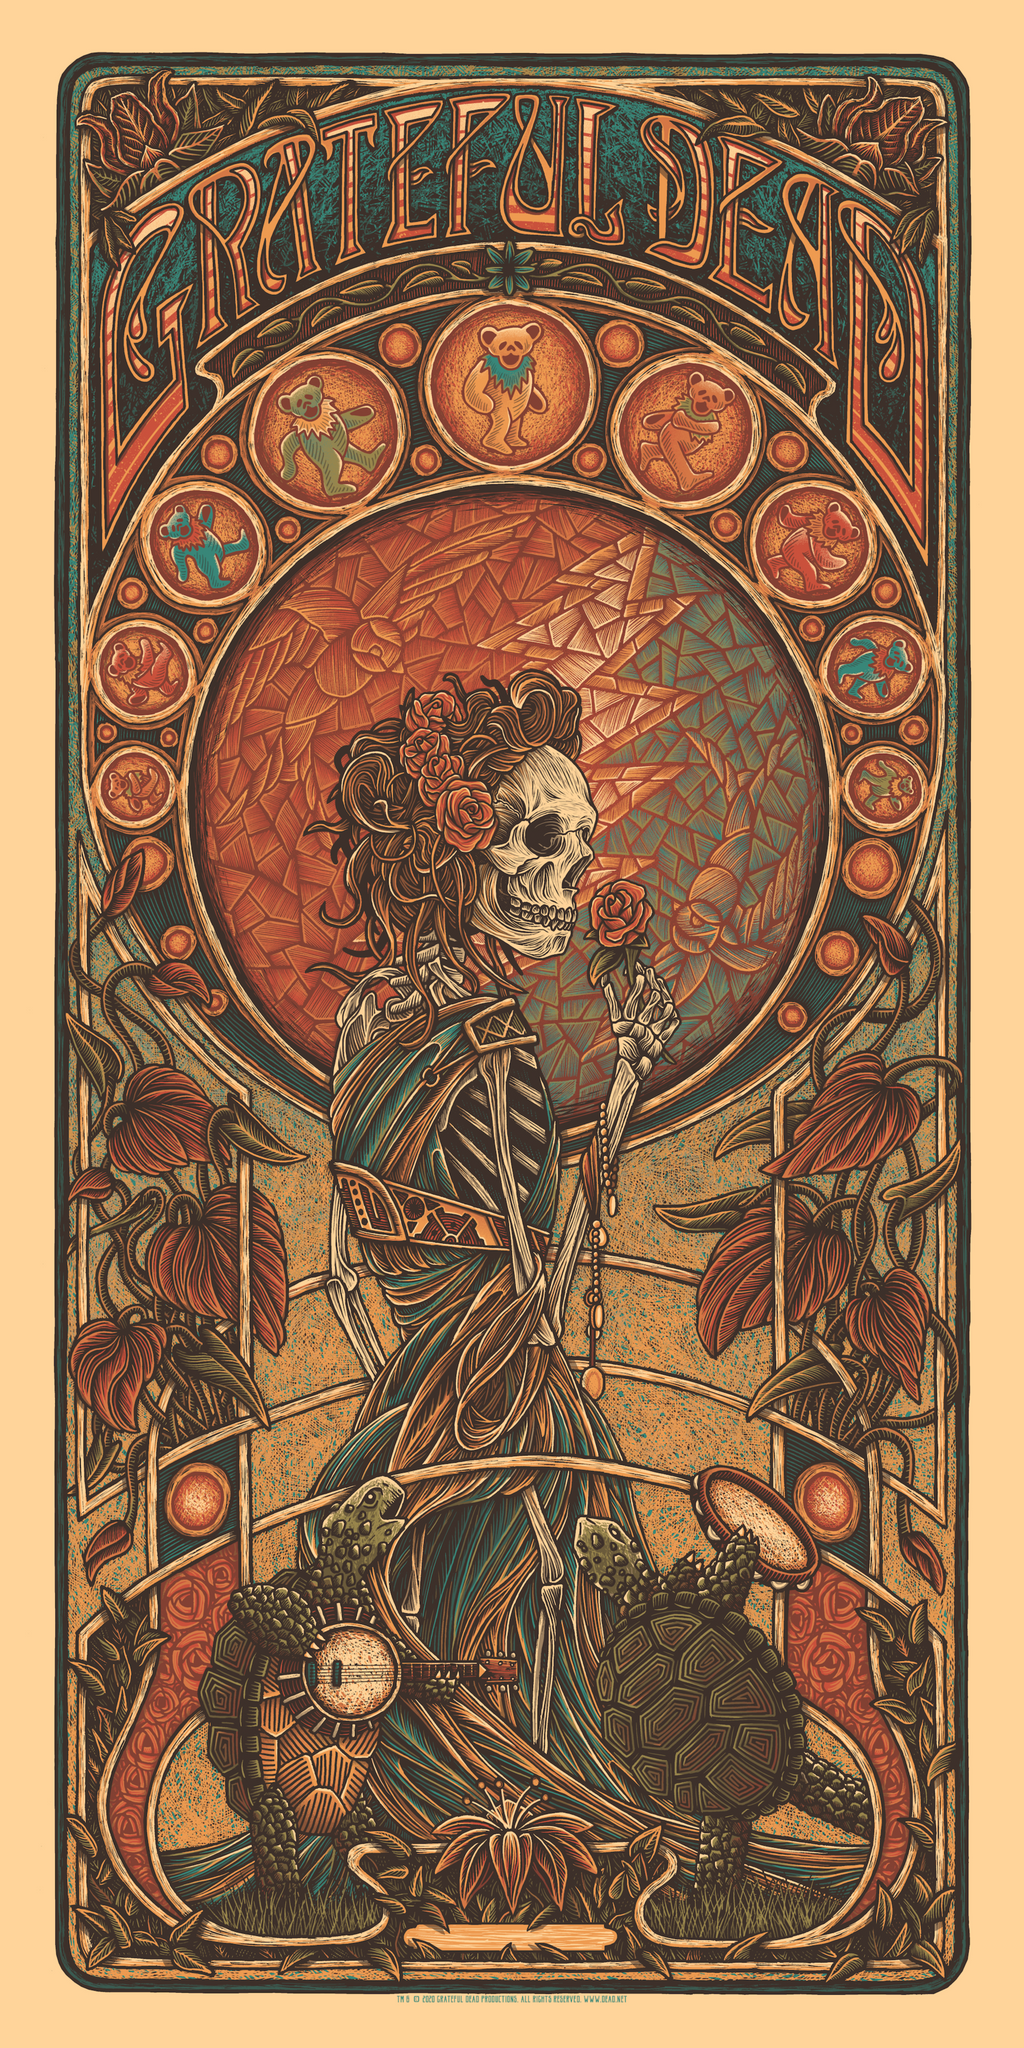 Grateful Dead by Luke Martin